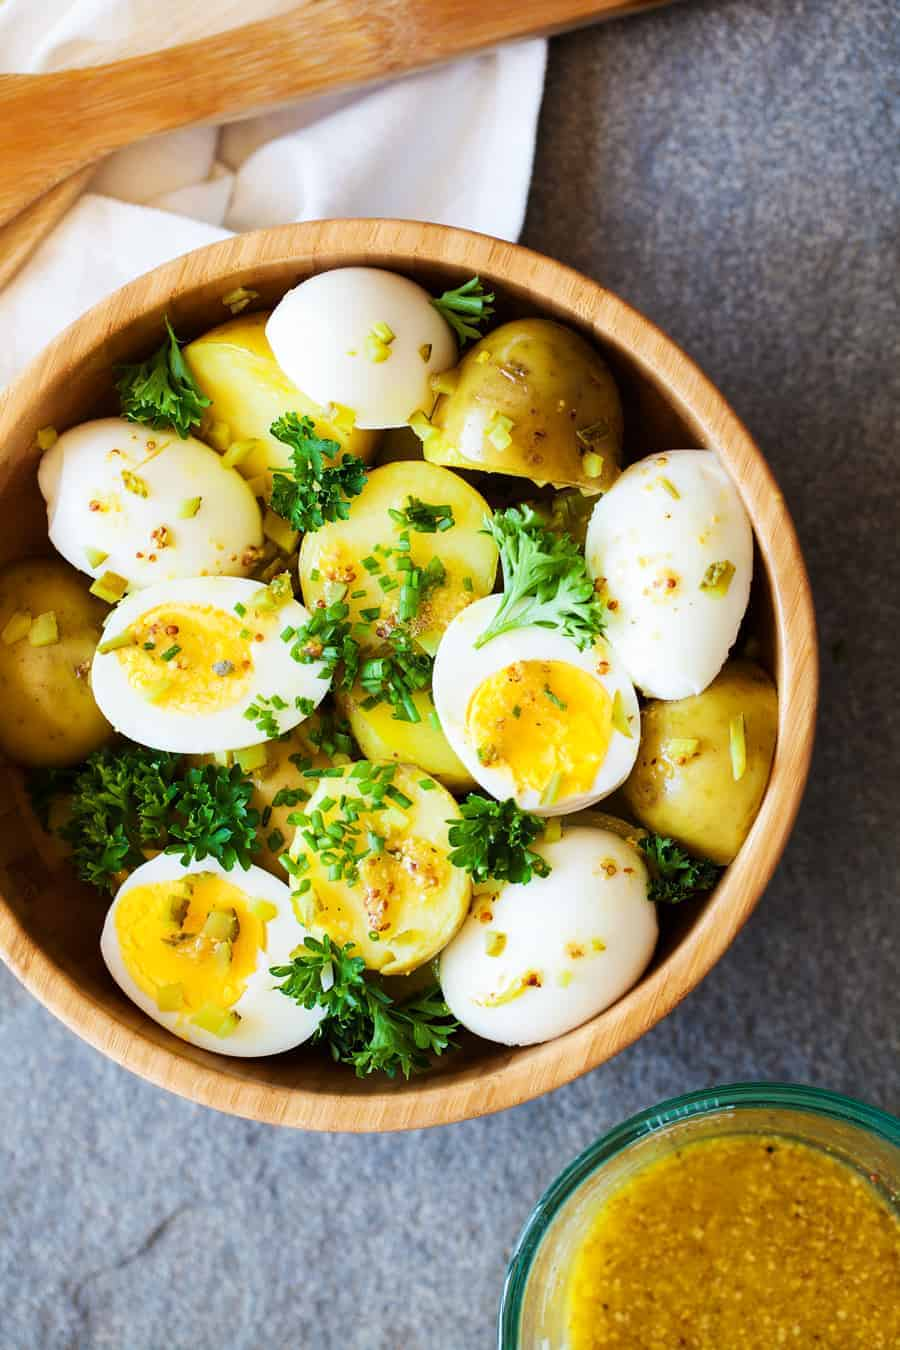 Hipster Potato Salad From Overhead in a Wooden Bowl